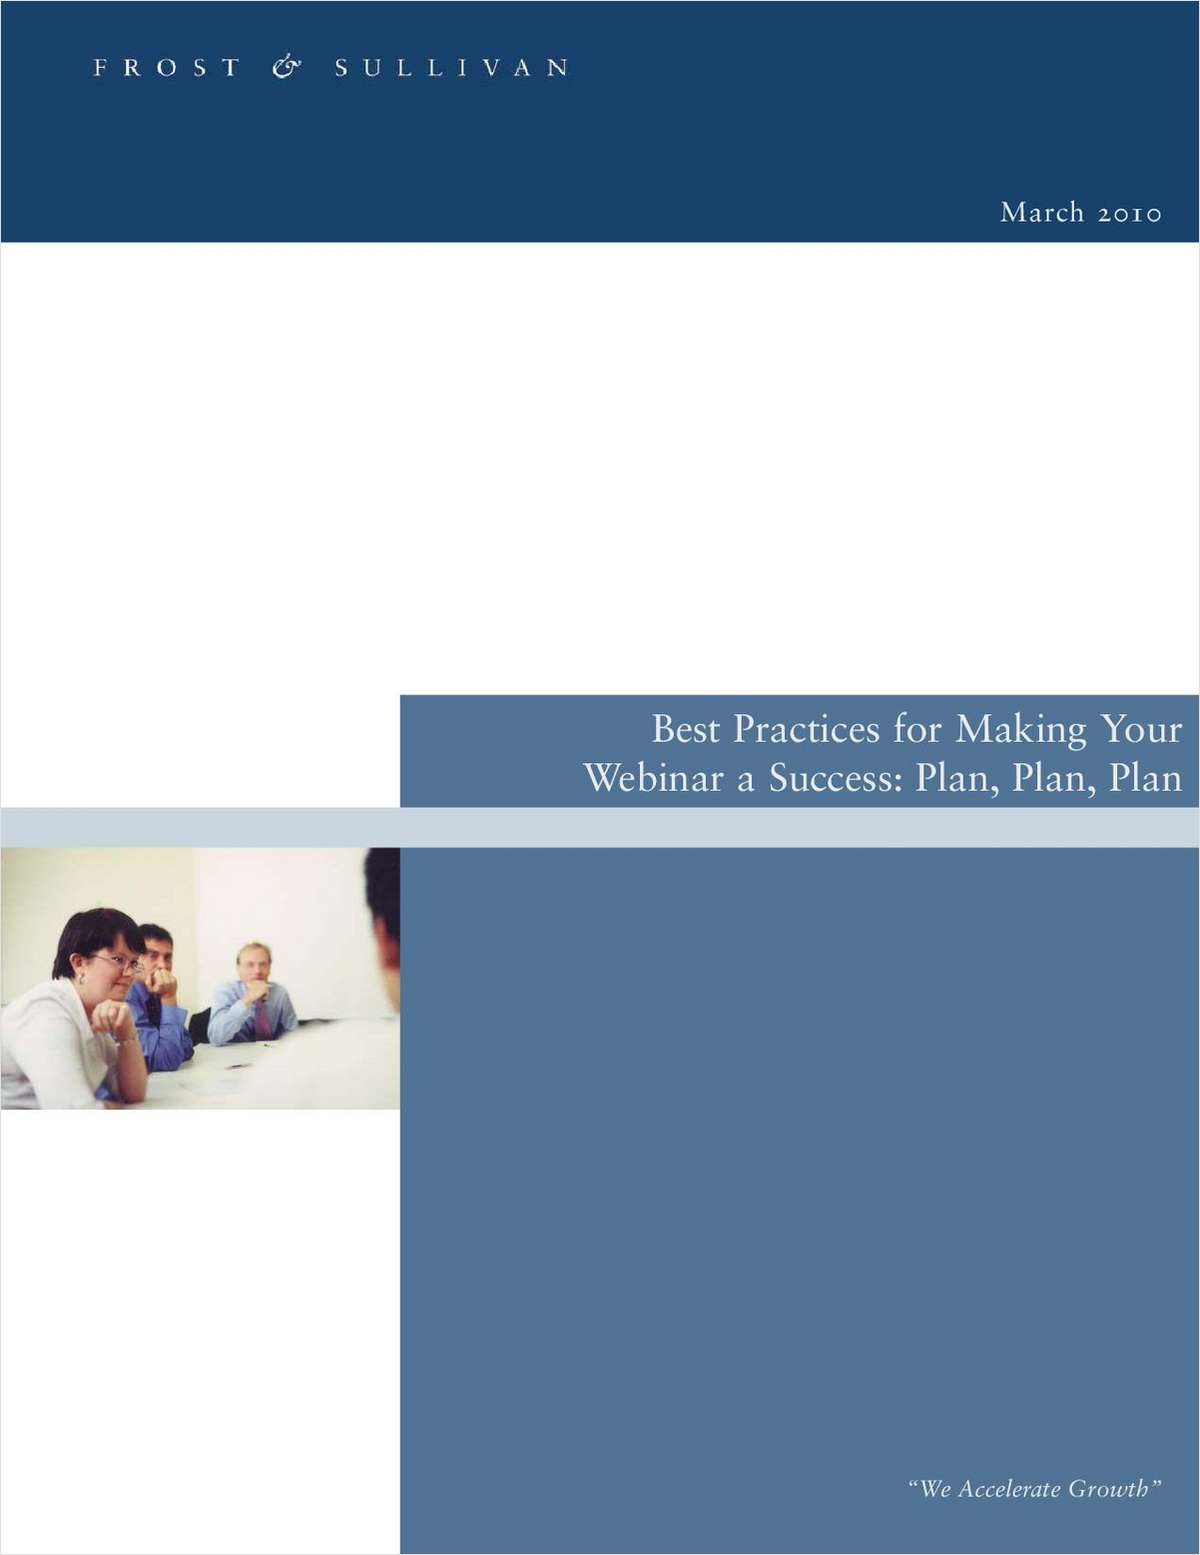 Best Practices for Making Your Webinar a Success - Plan, Plan, Plan